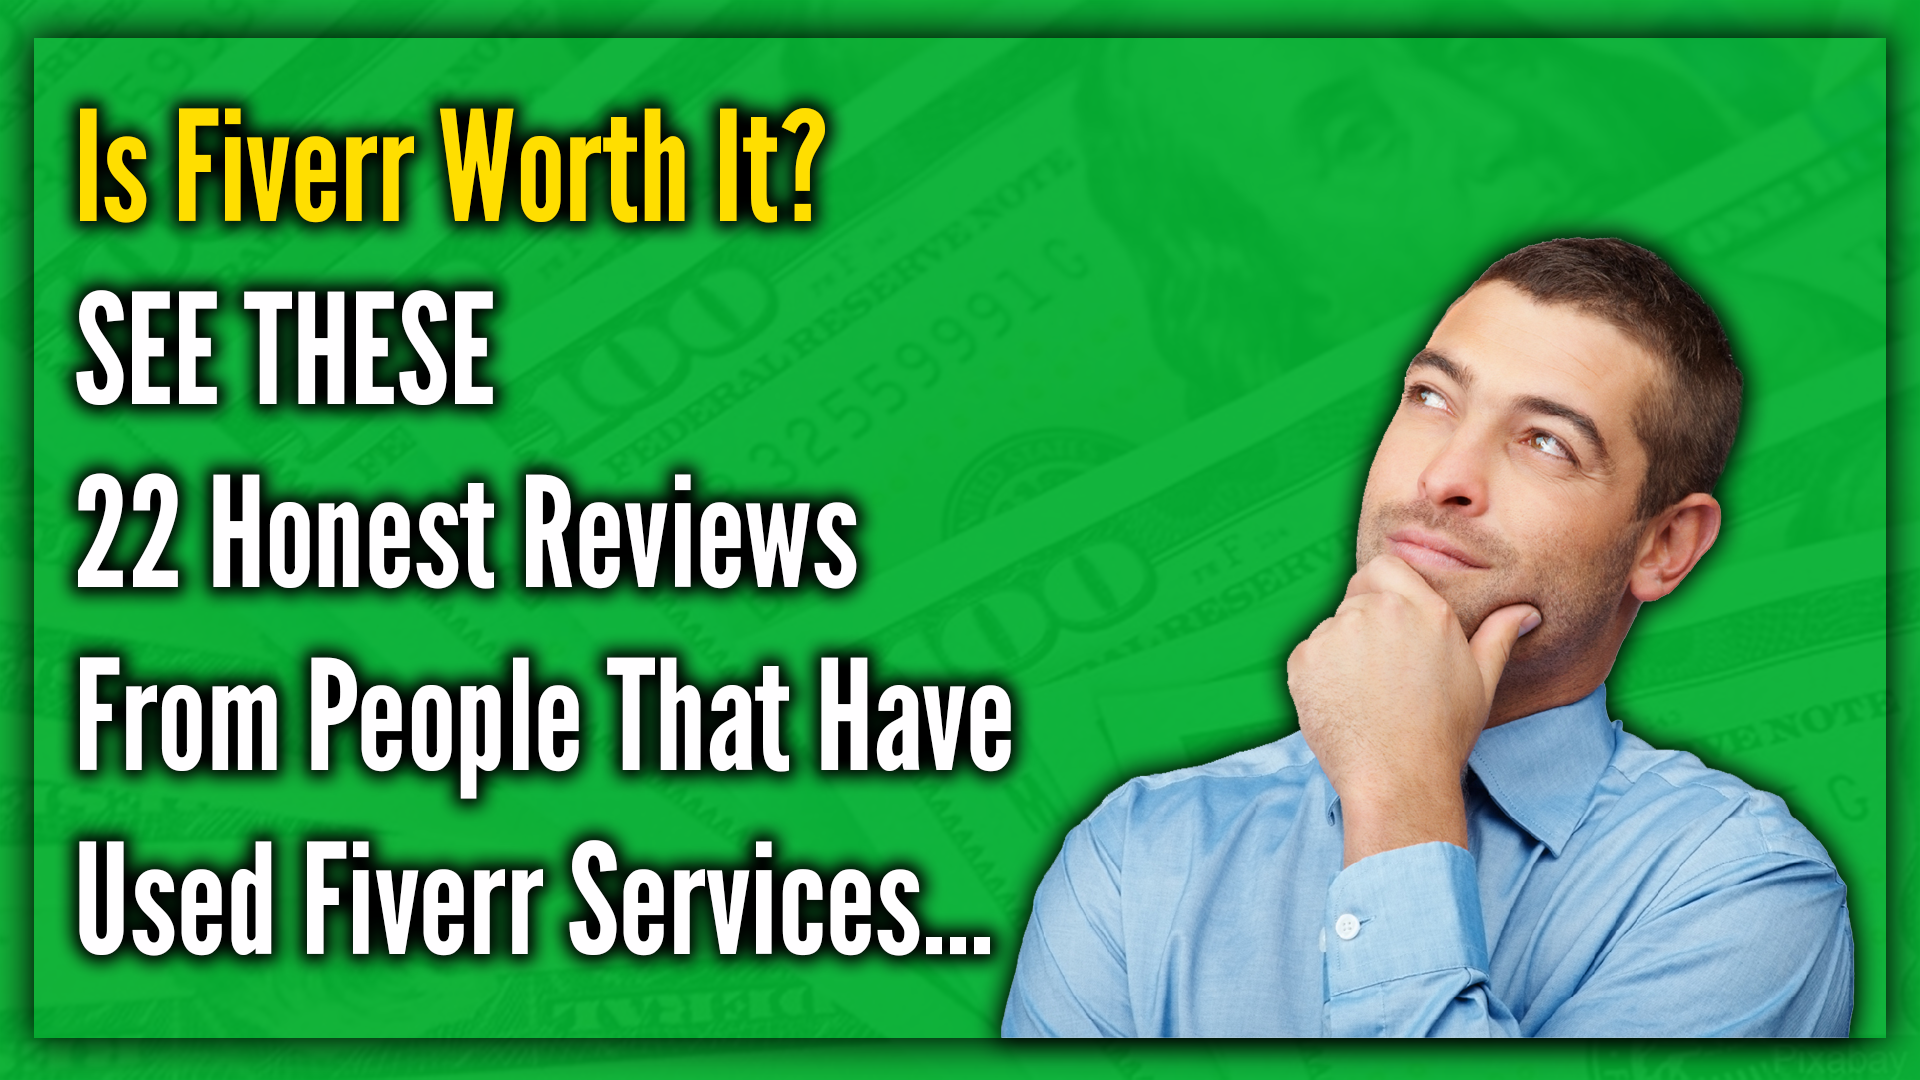 Fiverr Reviews